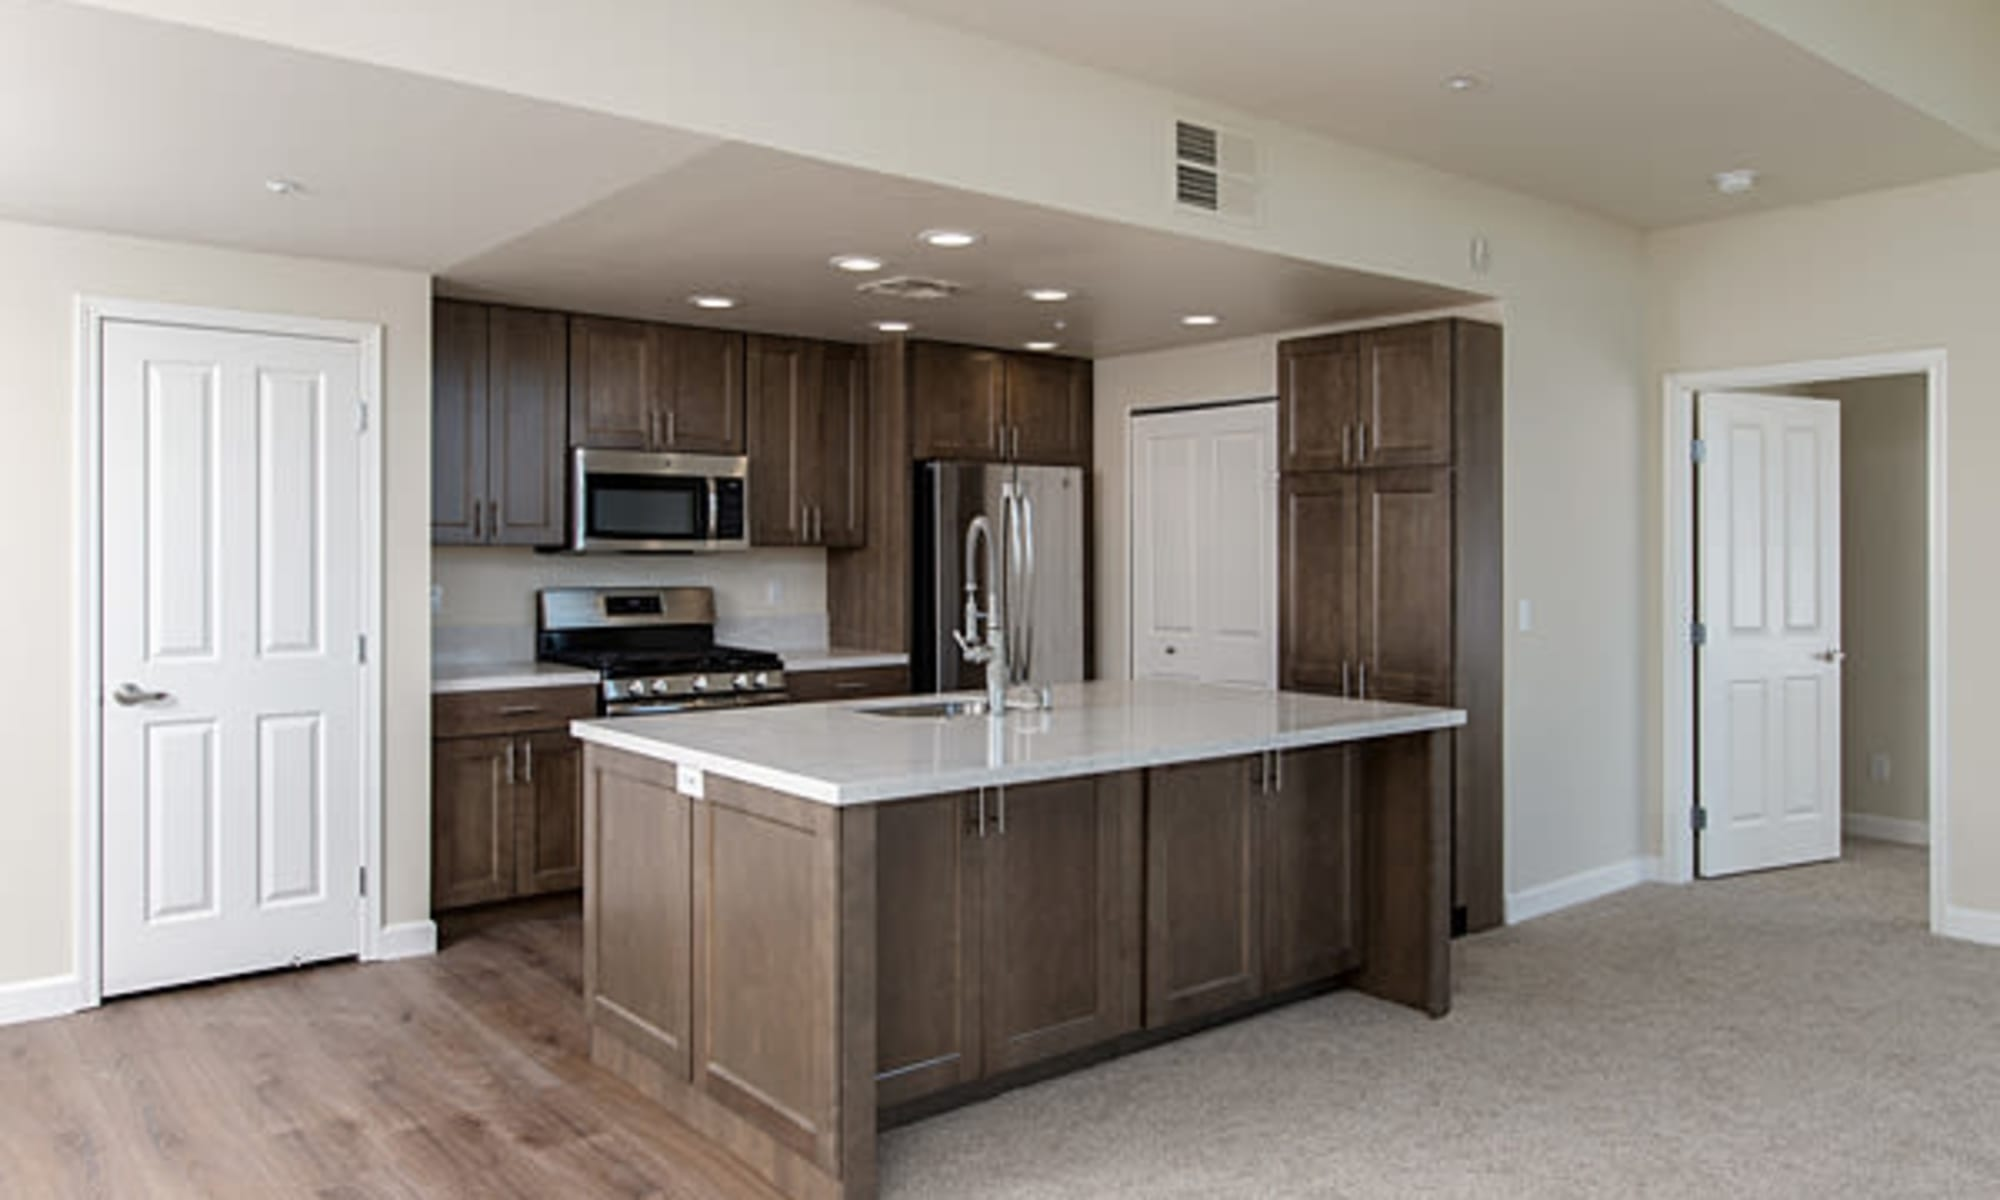 Luxury stainless steel appliances at The Boulders at Fountaingrove